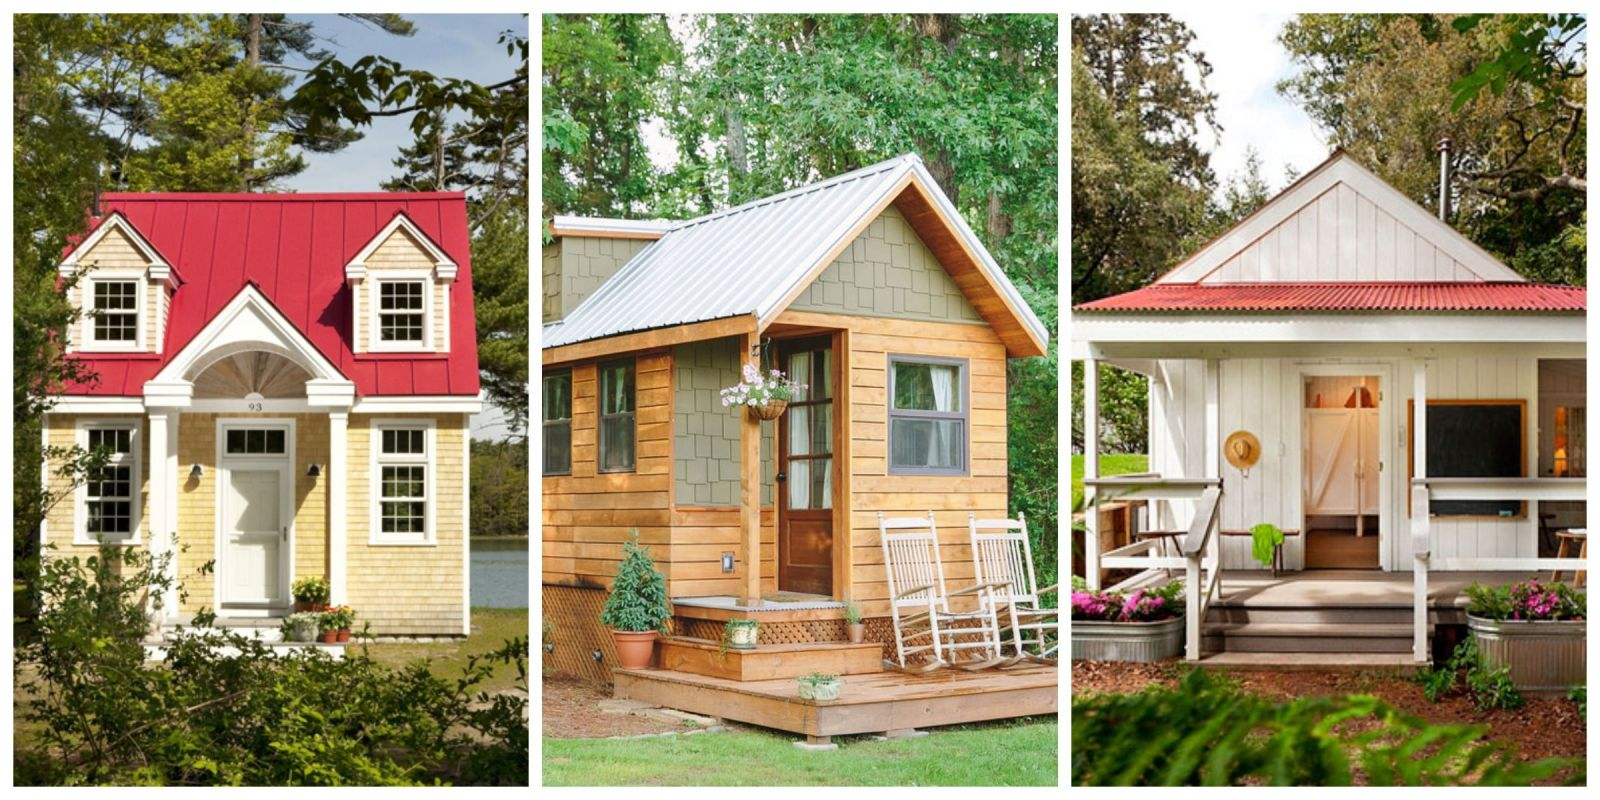 ^ 60 Best iny Houses 2017 - Small House Pictures & Plans